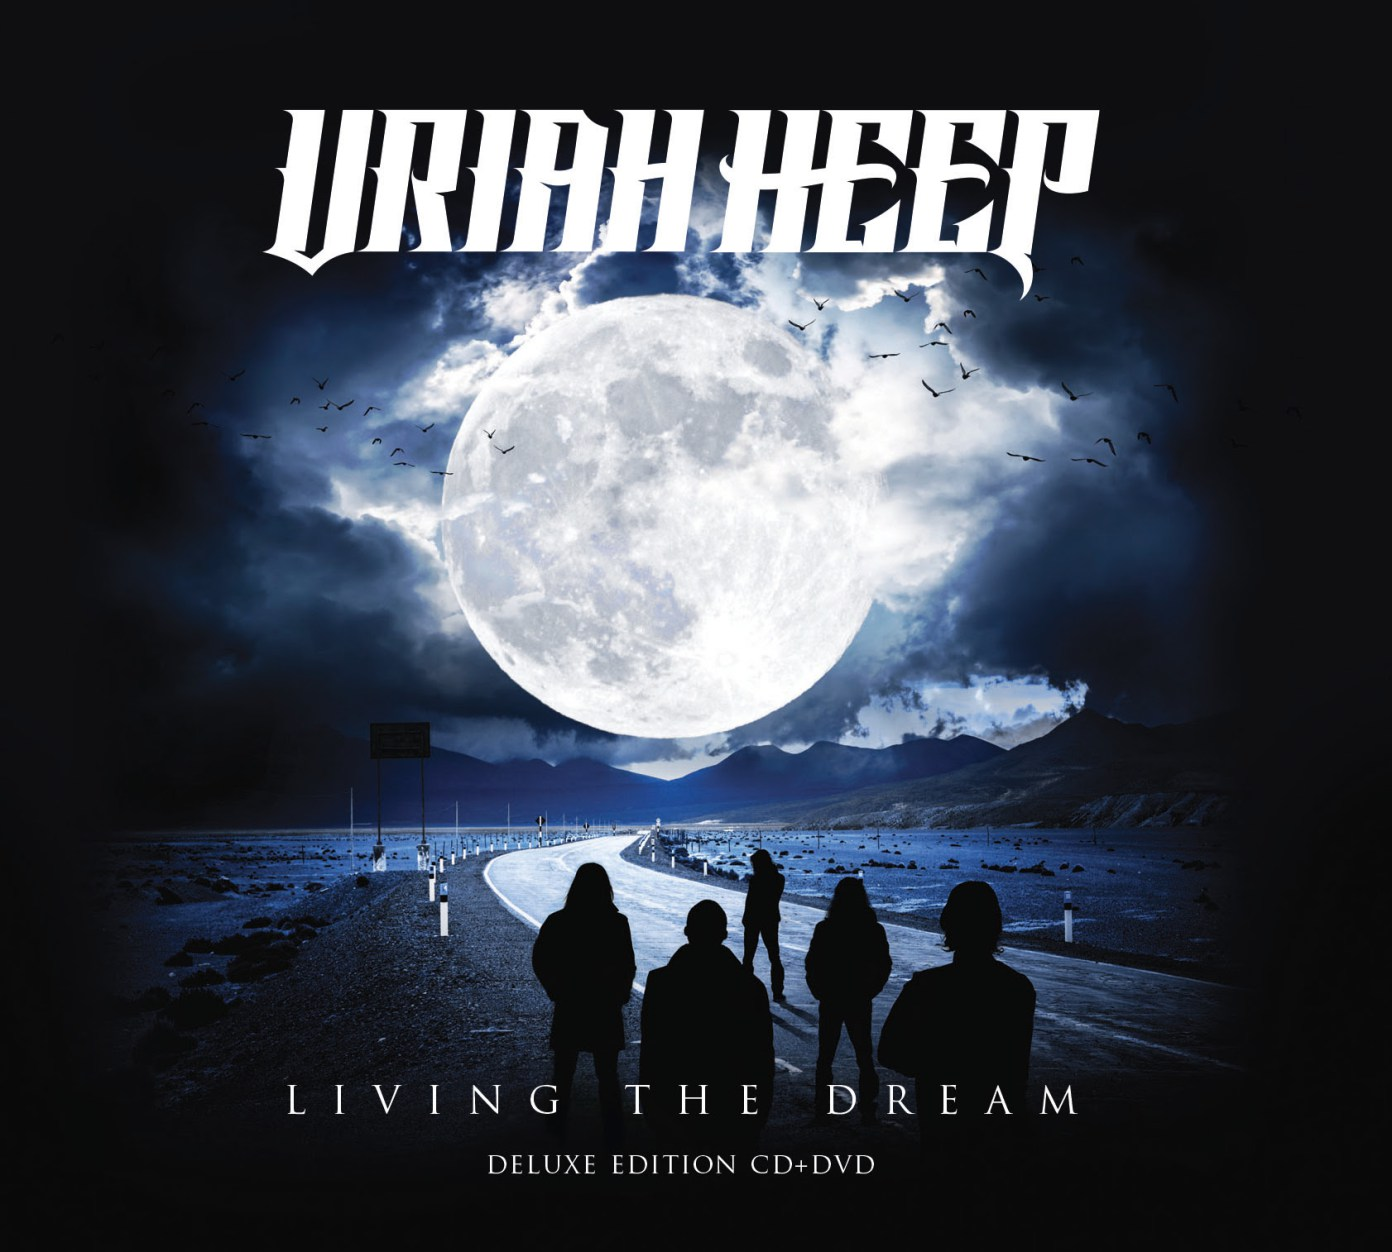 Uriah Heep - Living The Dream - Album Cover